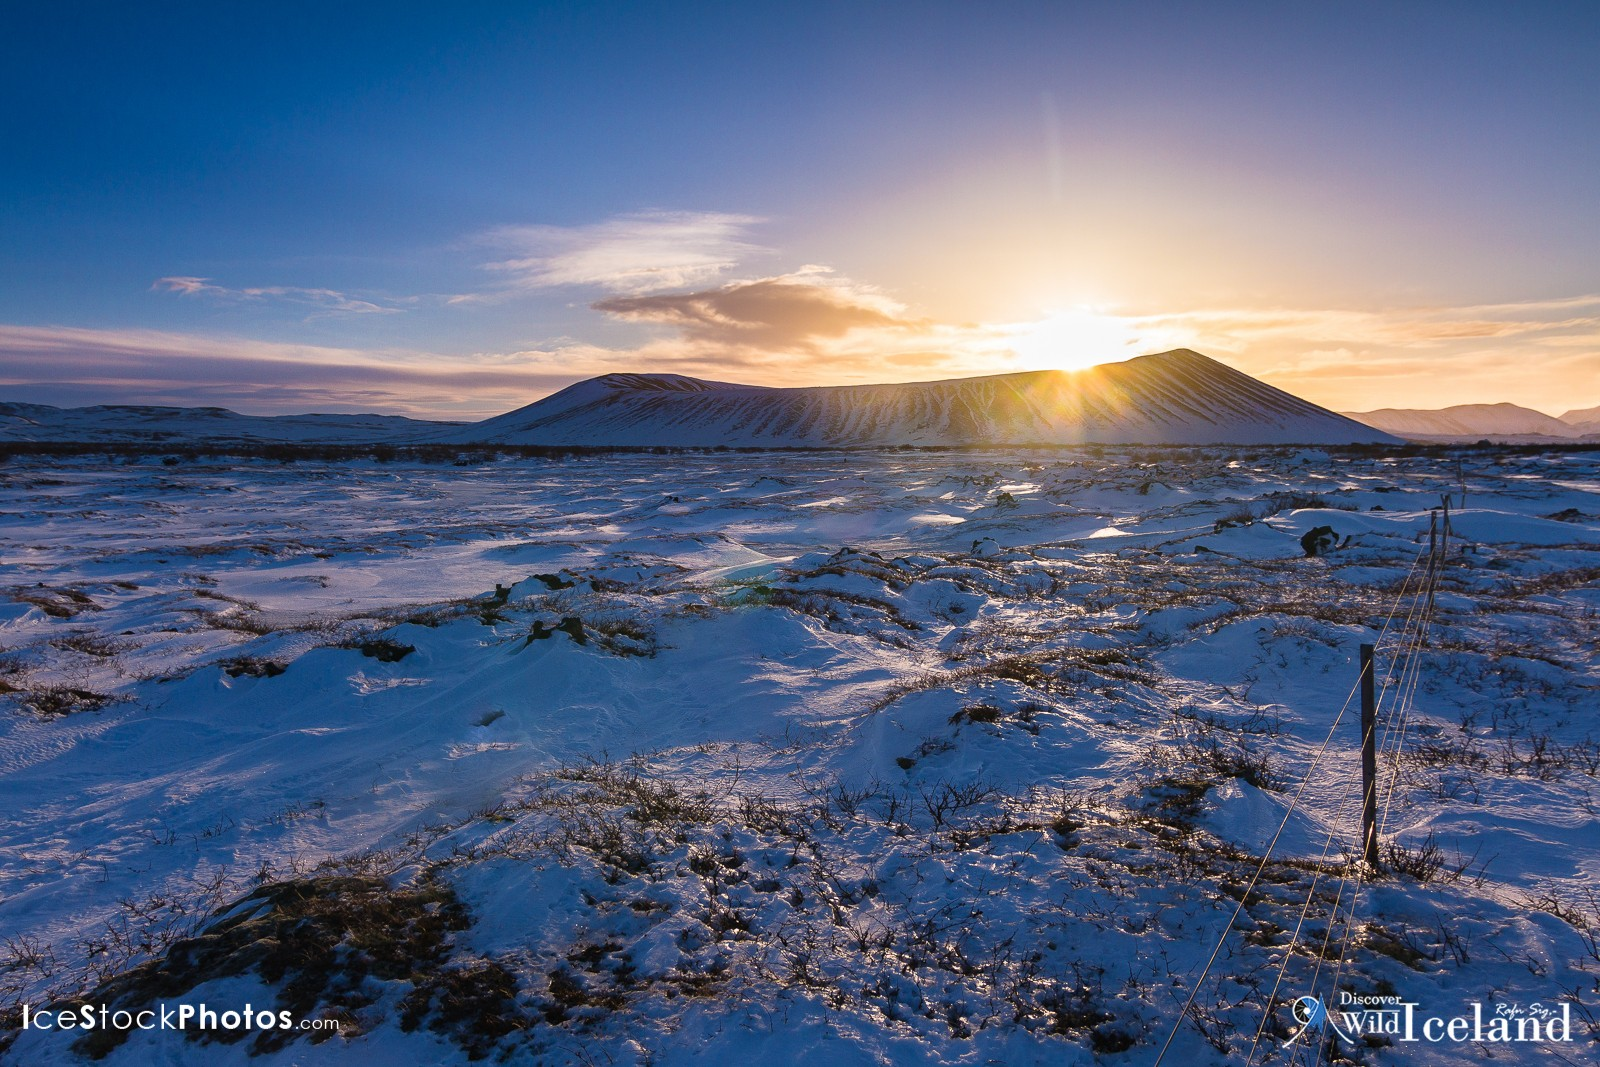 Hverfjall (also known as Hverfell) is a tephra cone or tuff ring volcano in northern Iceland, to the east of Mývatn, Iceland